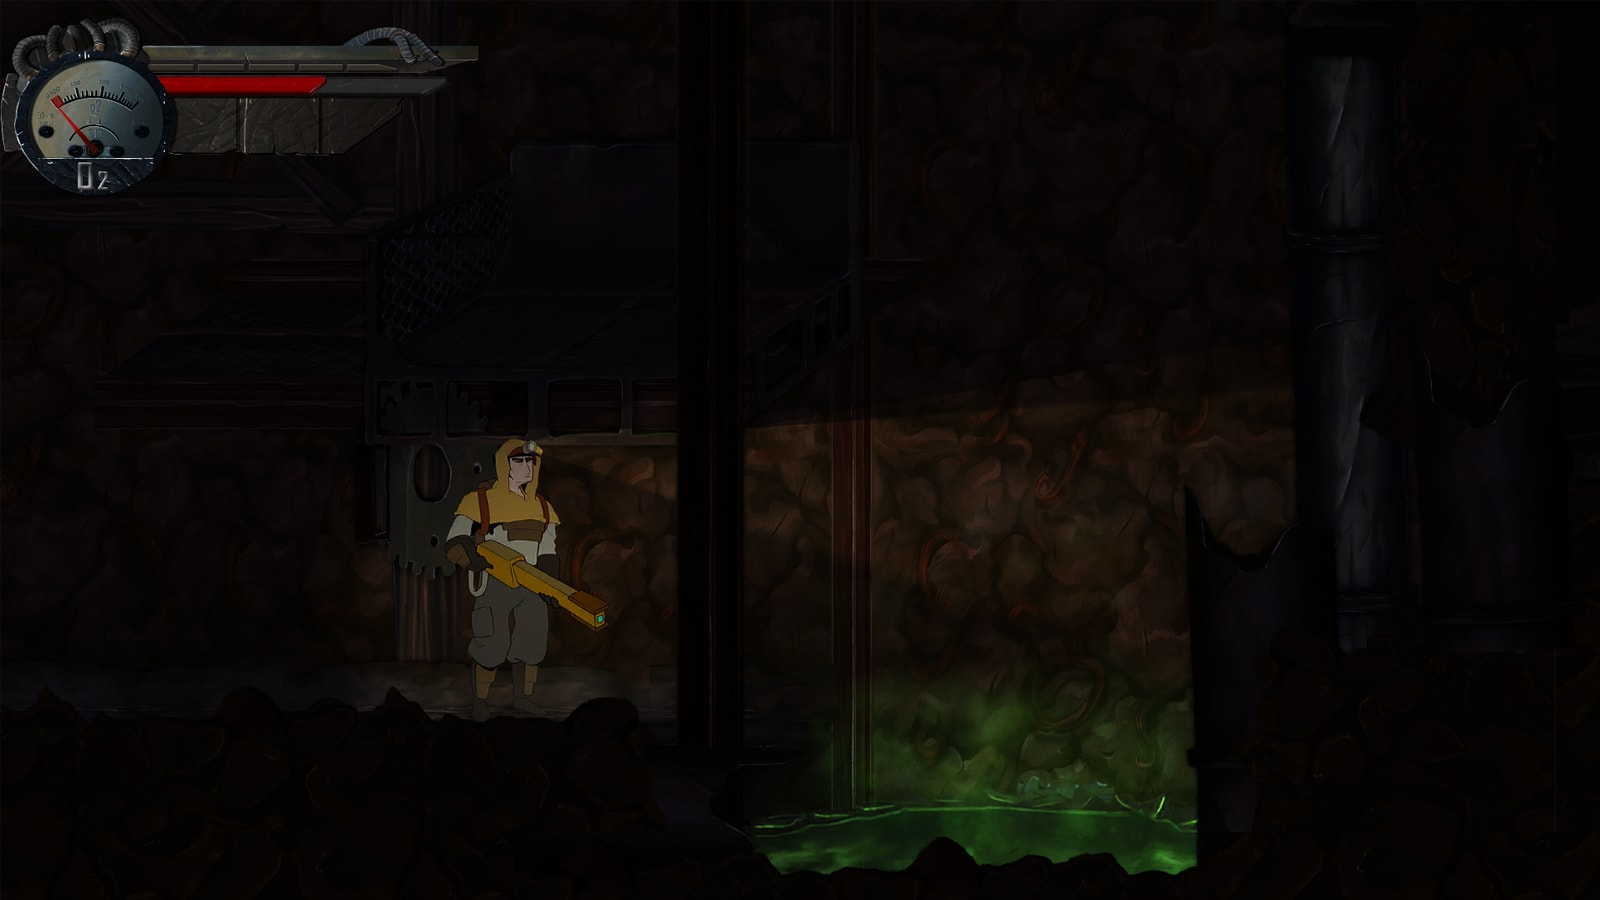 The game's hero looks at a pit full of green, toxic sludge.